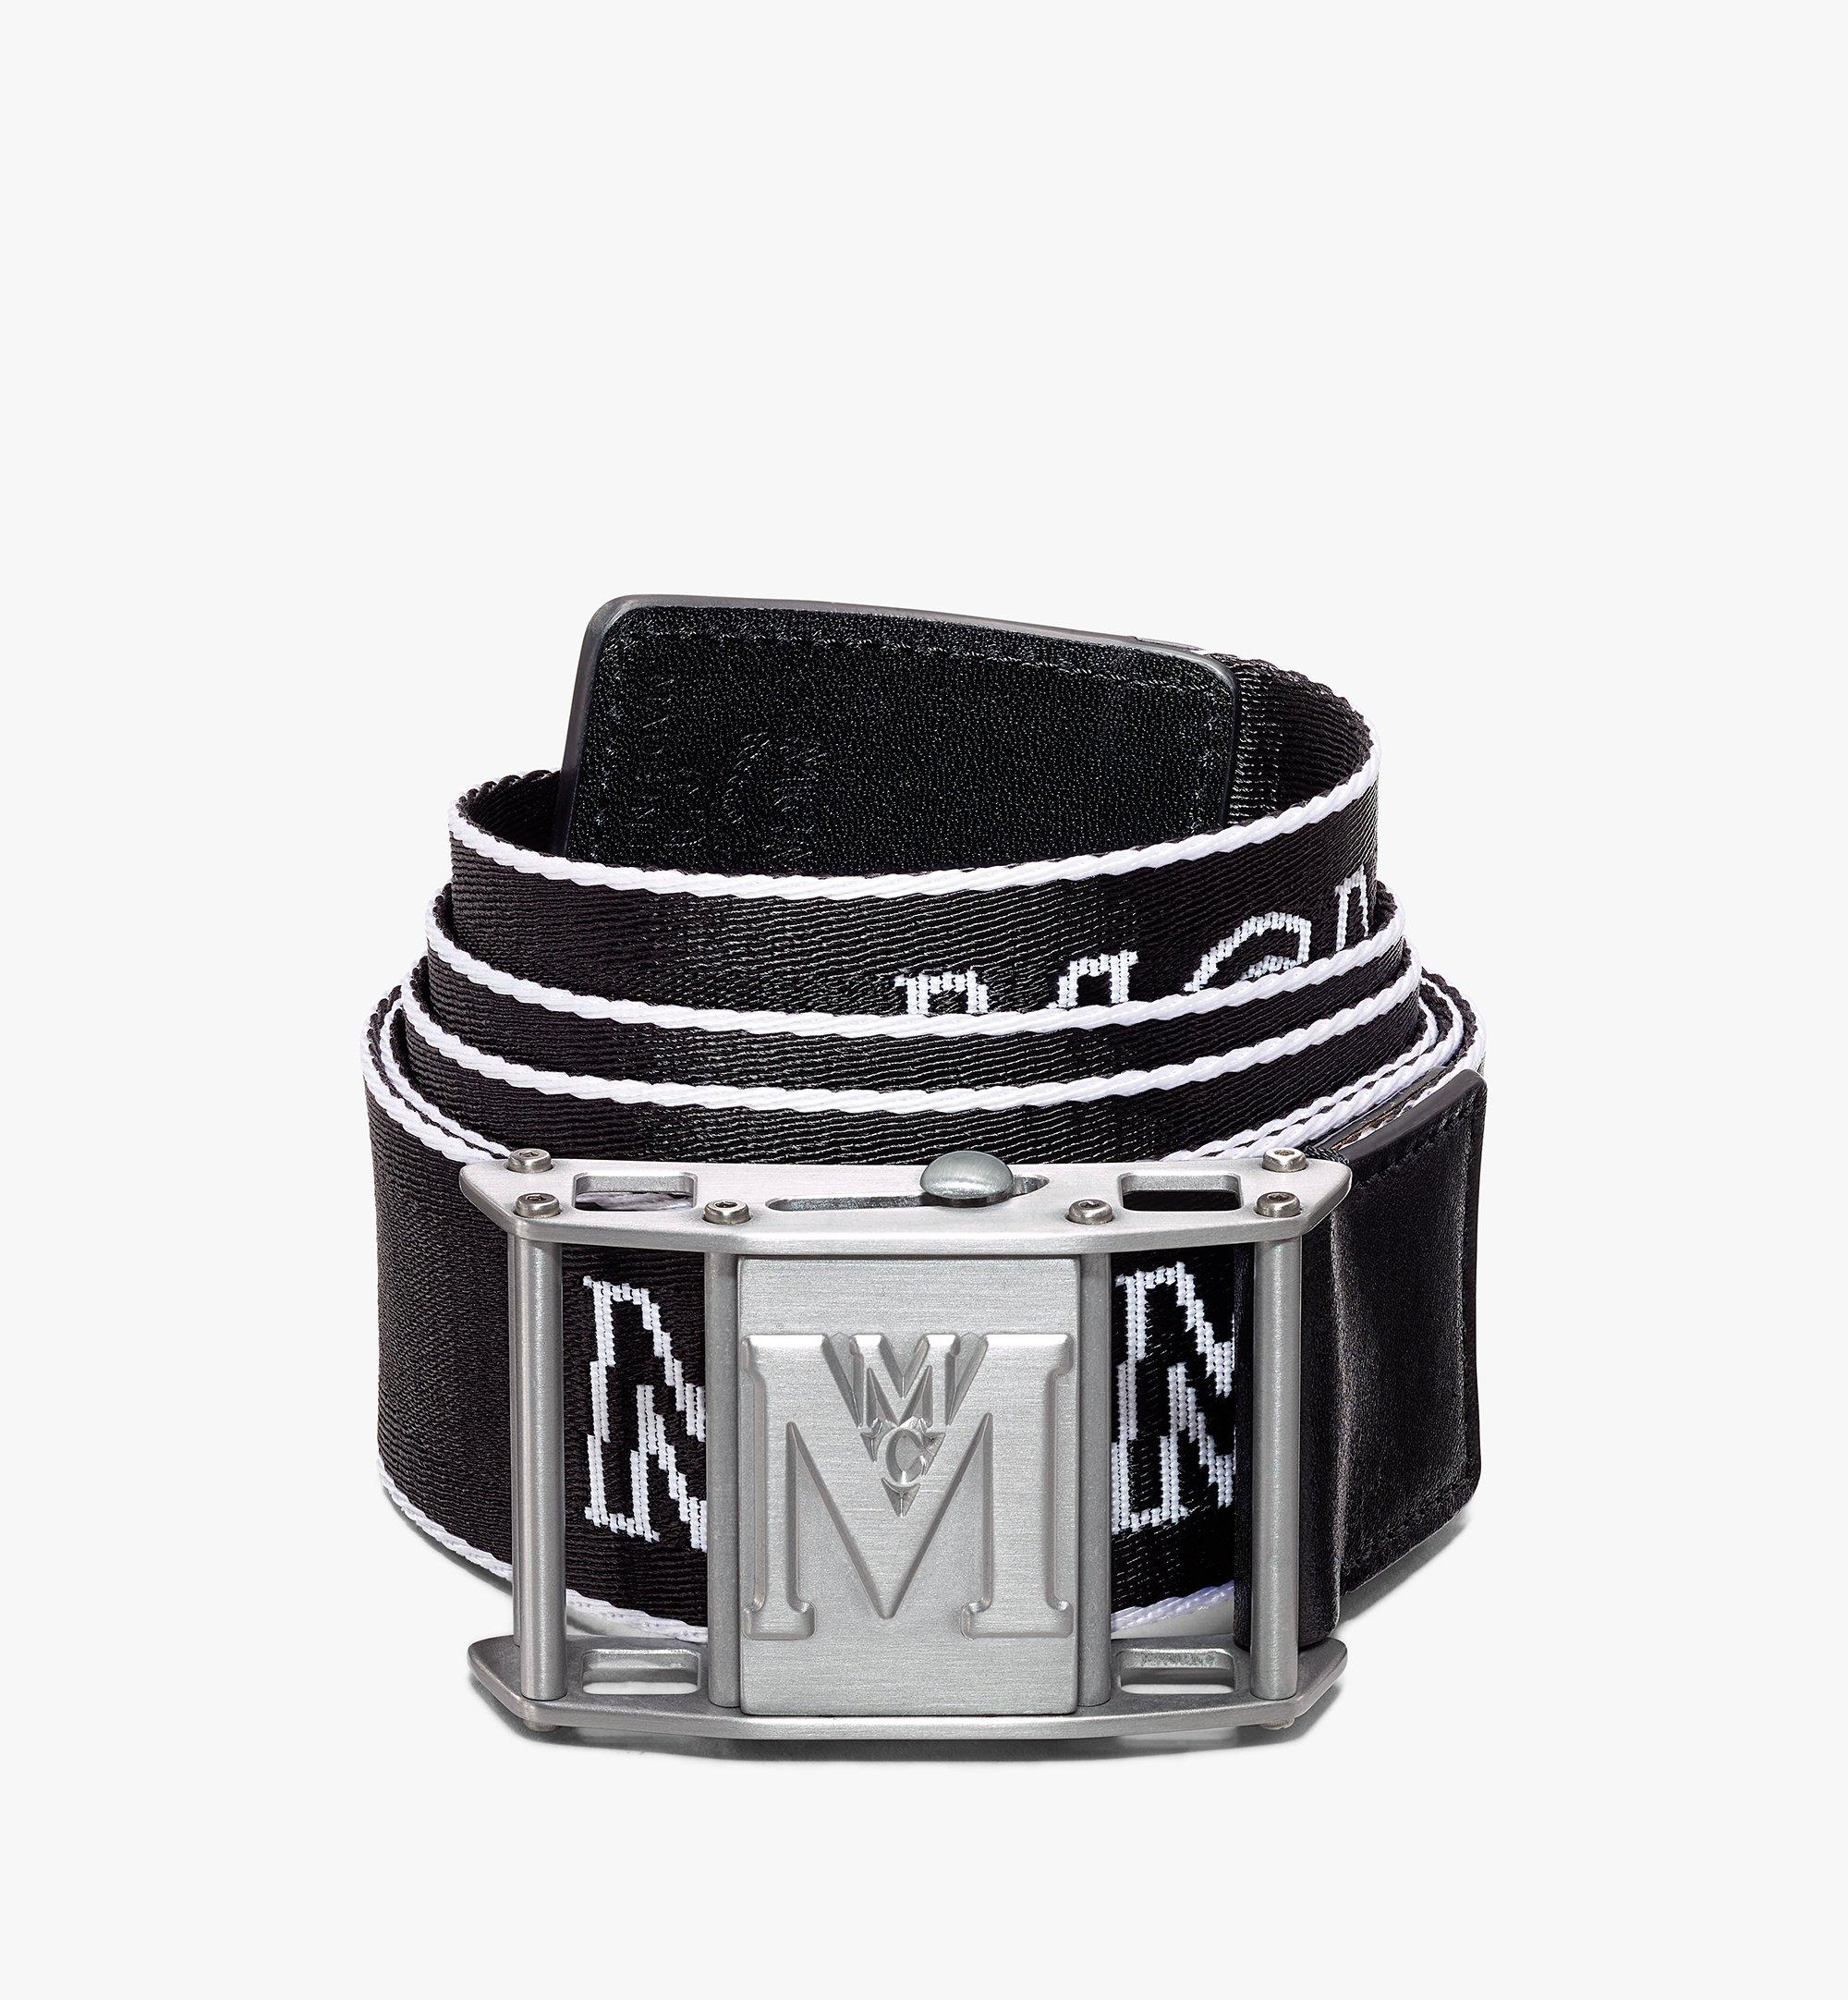 MCM Ceinture en toile à logo industriel 3,8 cm Black MXBAAMM01BK001 Alternate View 1